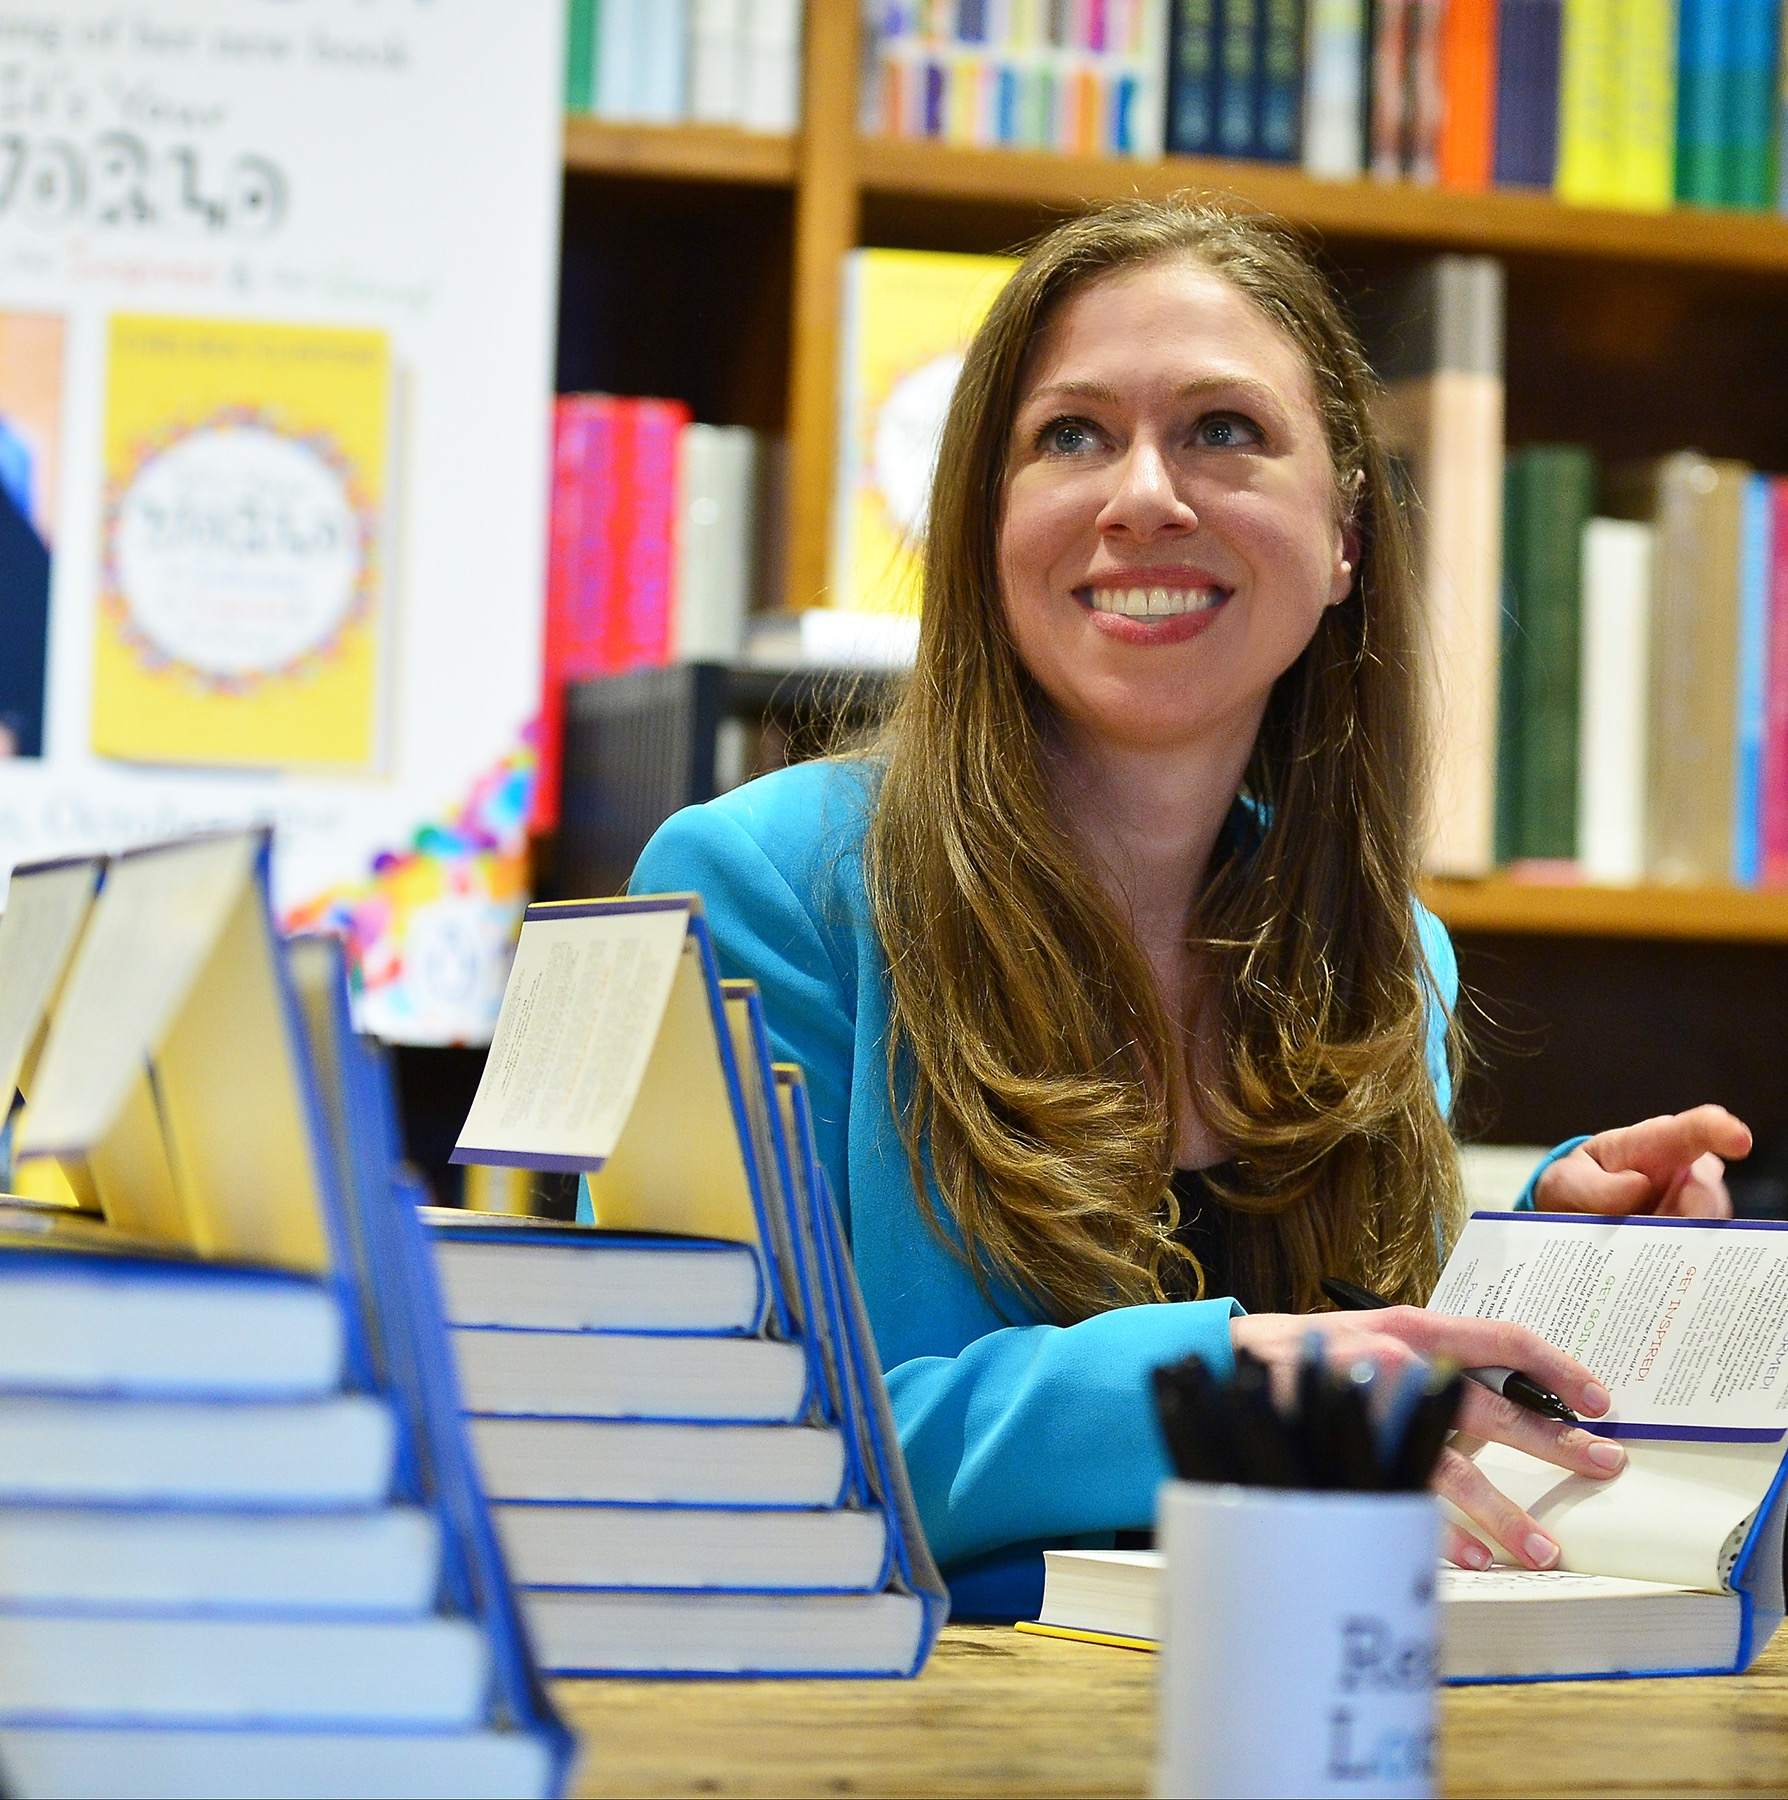 Chelsea Clinton at bookstore